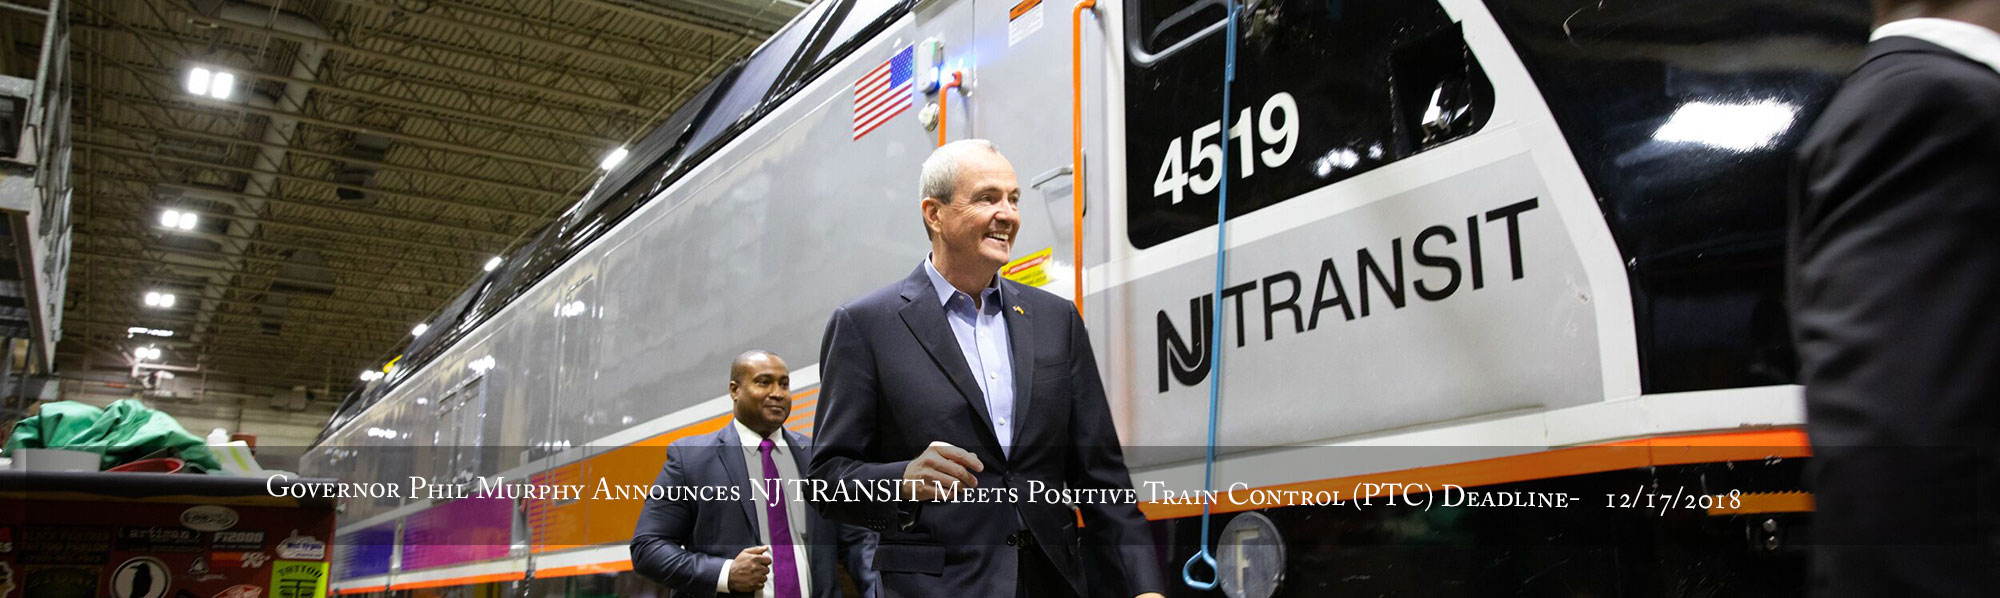 Governor Phil Murphy announces NJ TRANSIT will meet the federally-mandated Positive Train Control (PTC) deadline on December 17, 2018,